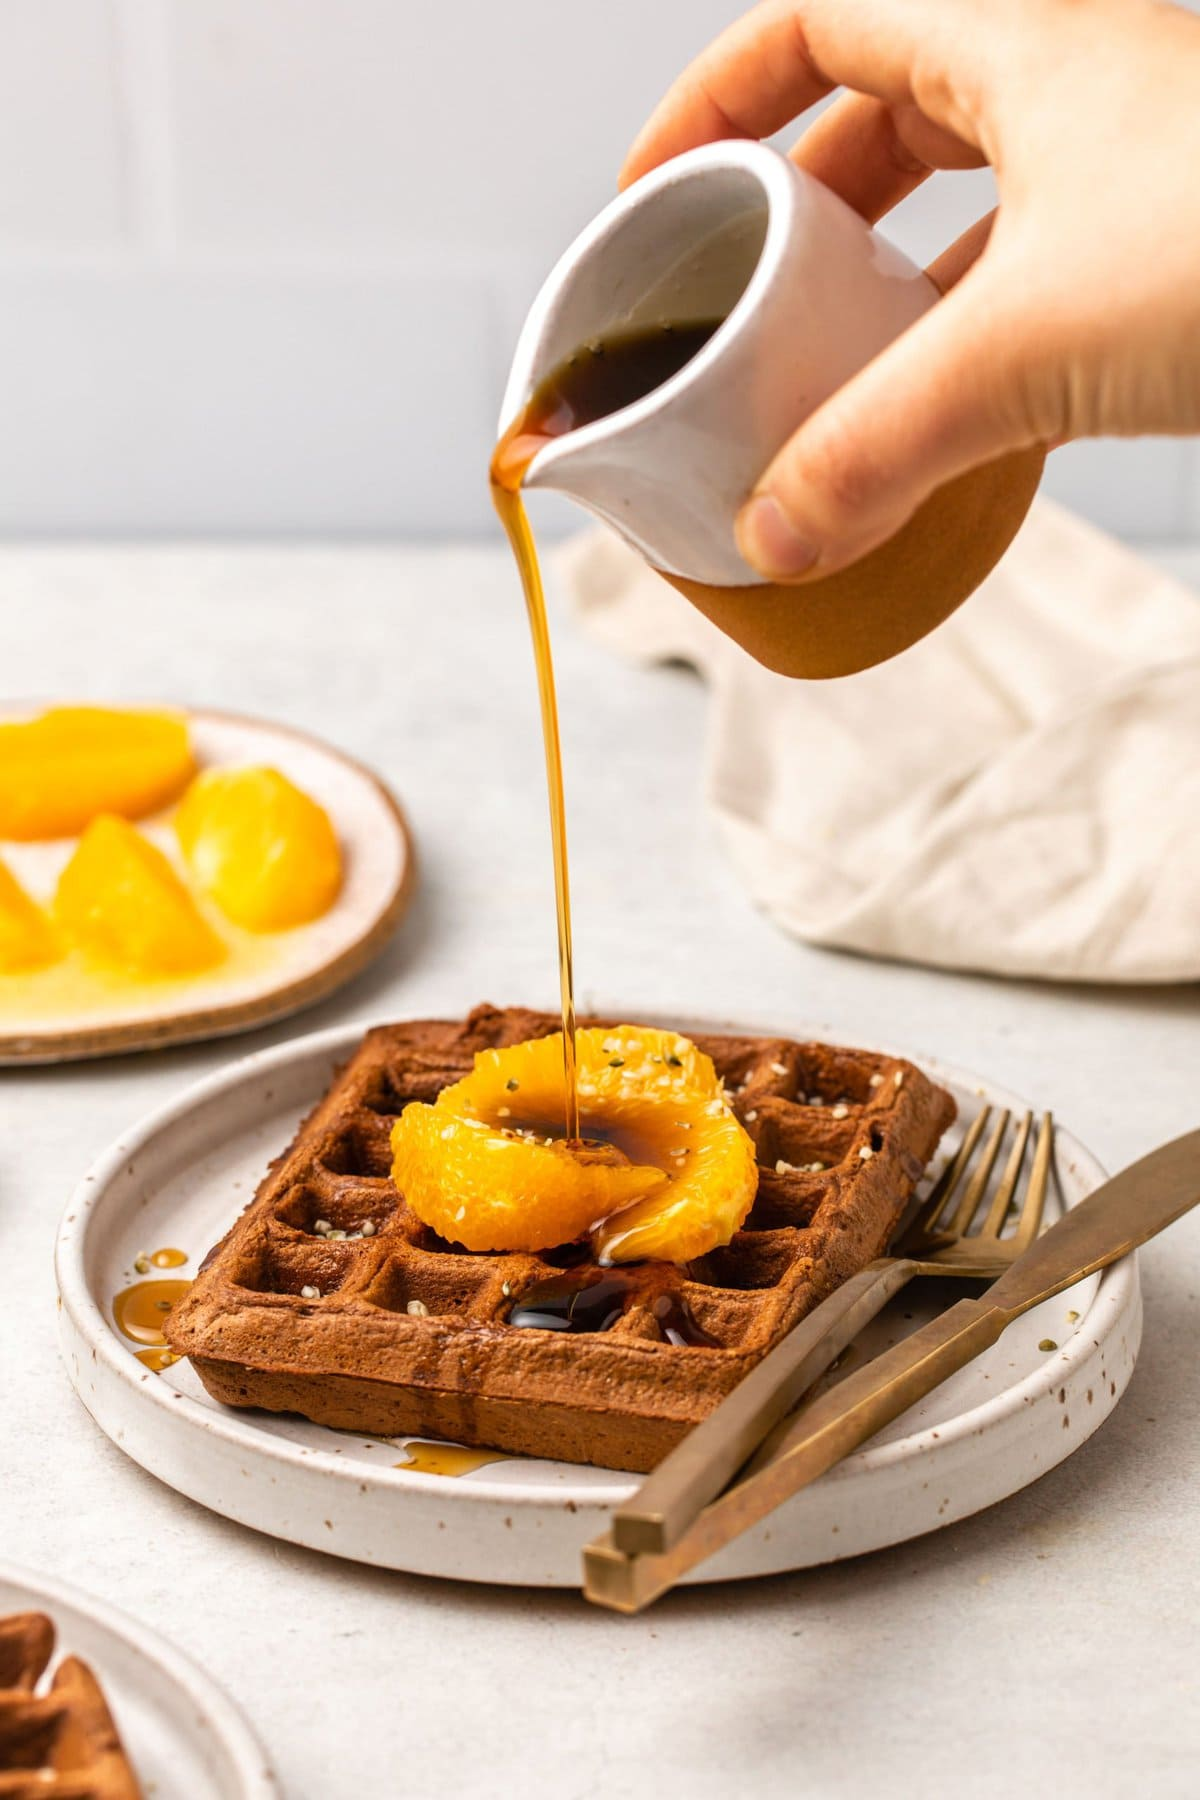 hand pouring ceramic container of maple syrup over a waffle topped with orange slices and hemp hearts